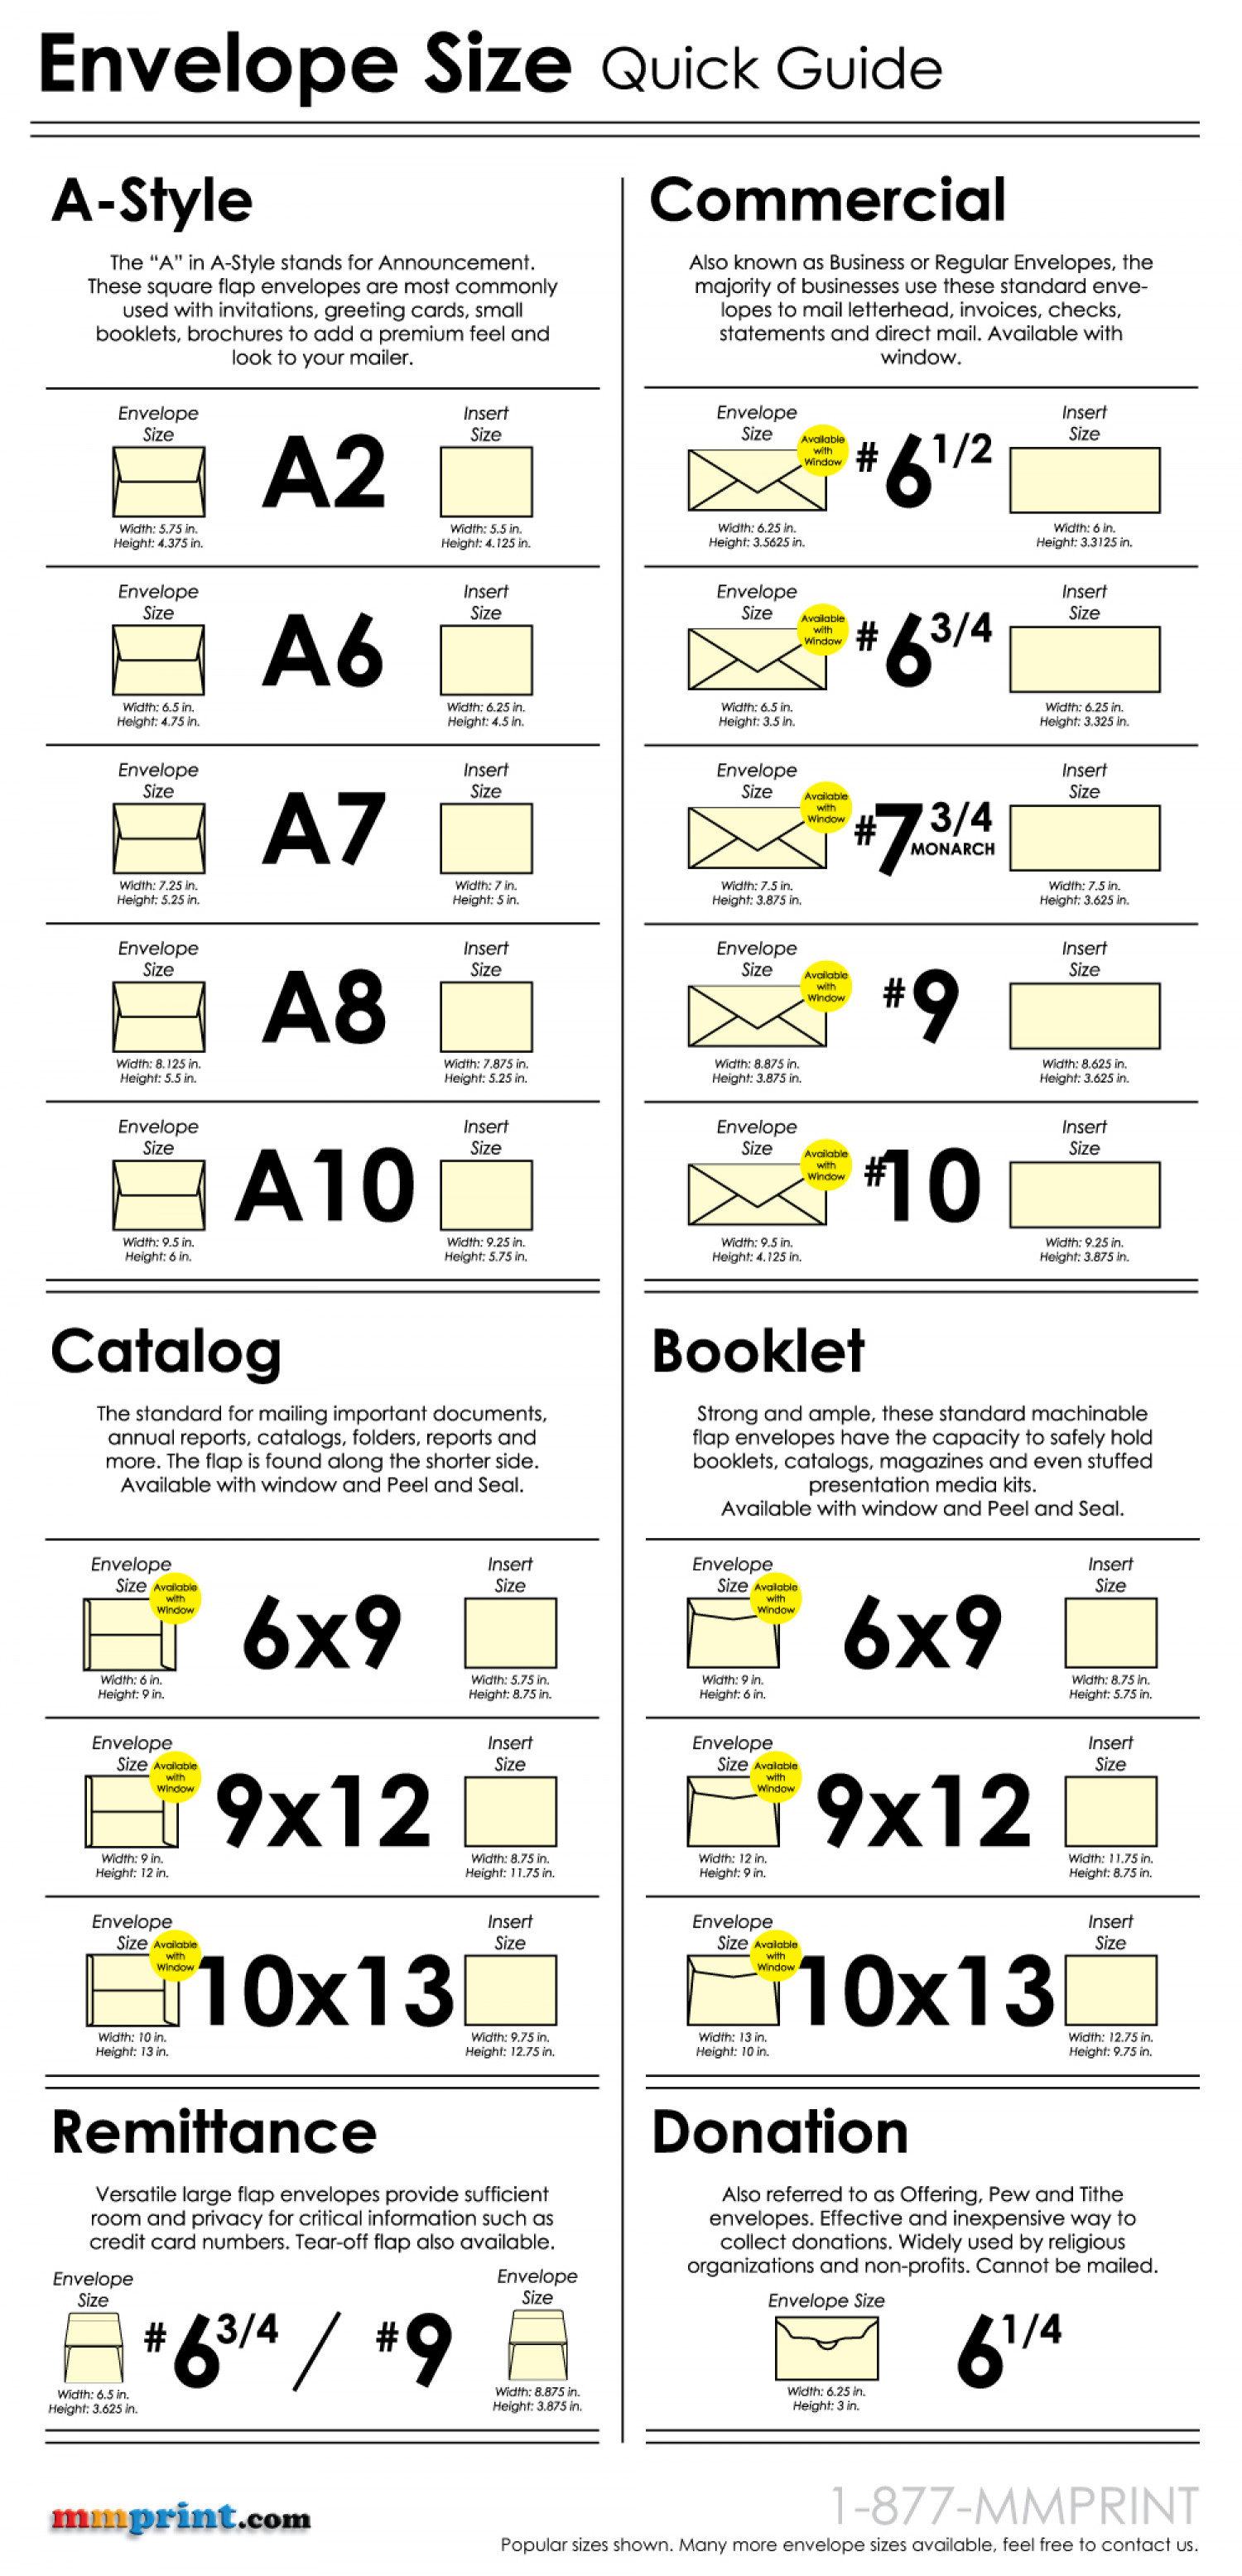 Envelope size chart quick guide visual ly